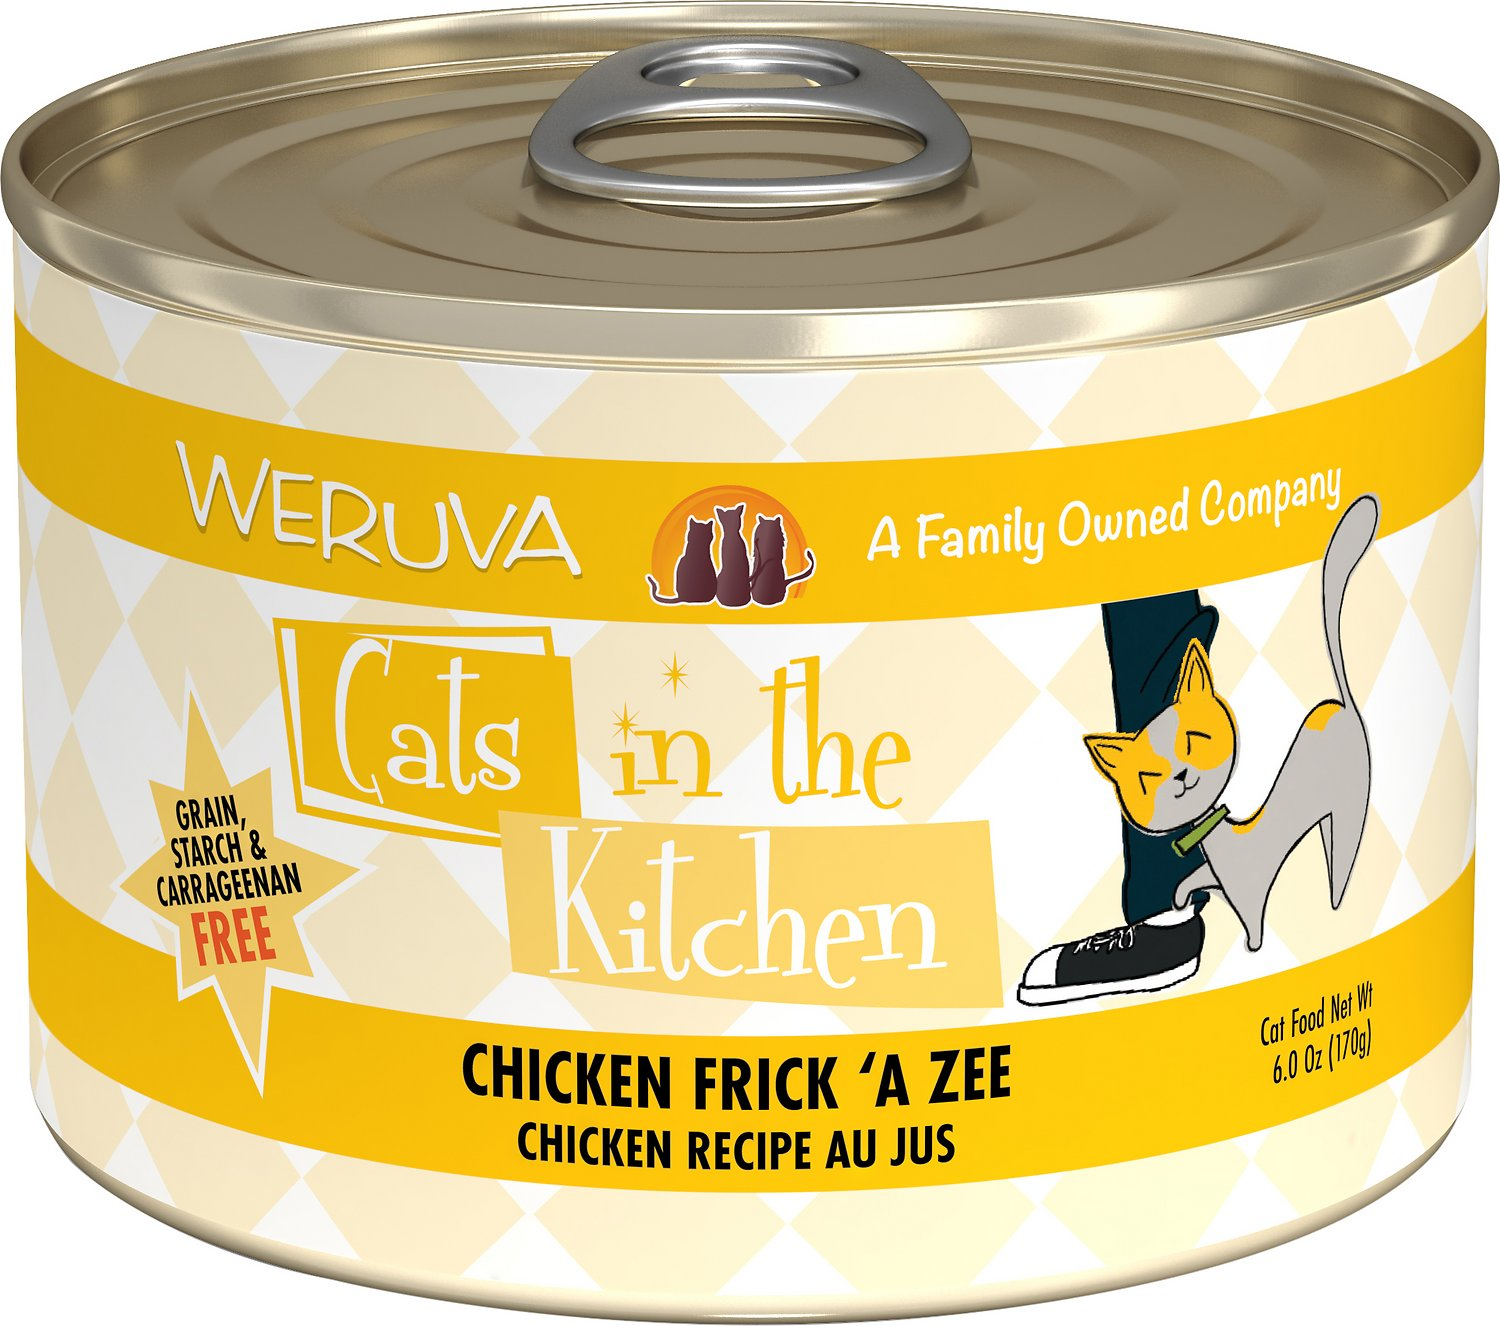 Weruva Cats in the Kitchen Chicken Frick 'A Zee Chicken Recipe Au Jus Grain-Free Wet Cat Food, 6-oz